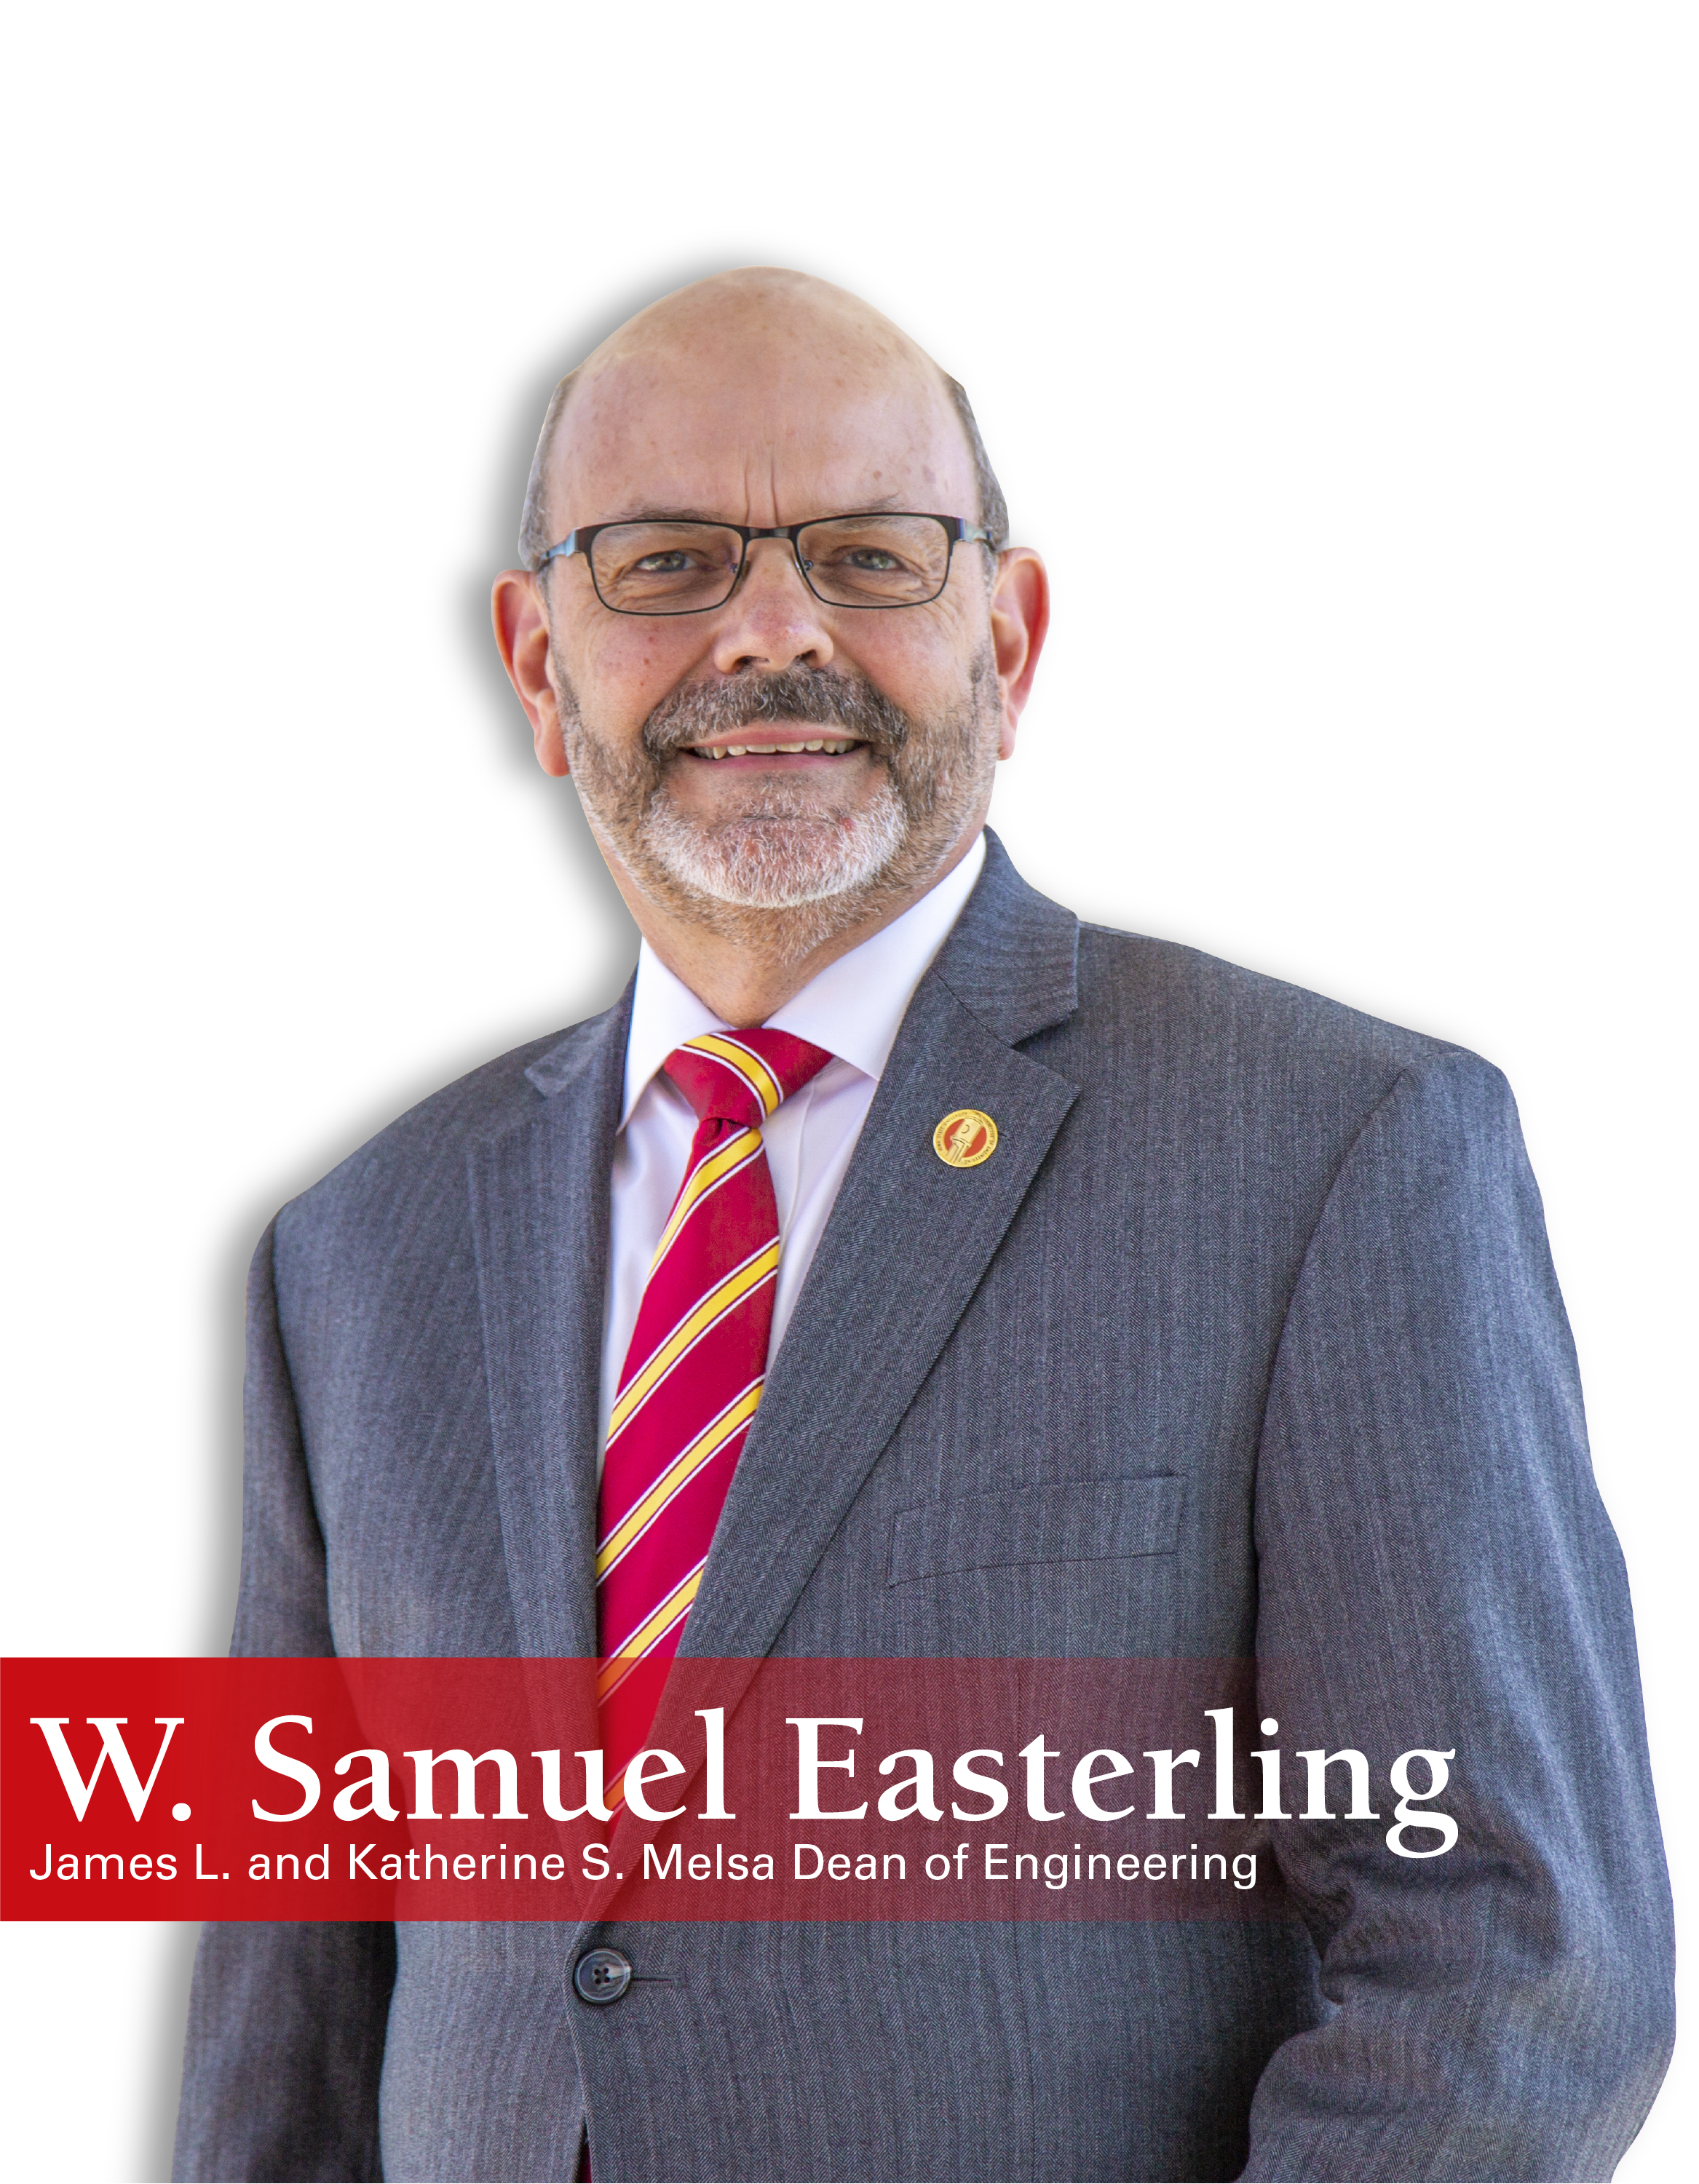 Sam Easterling